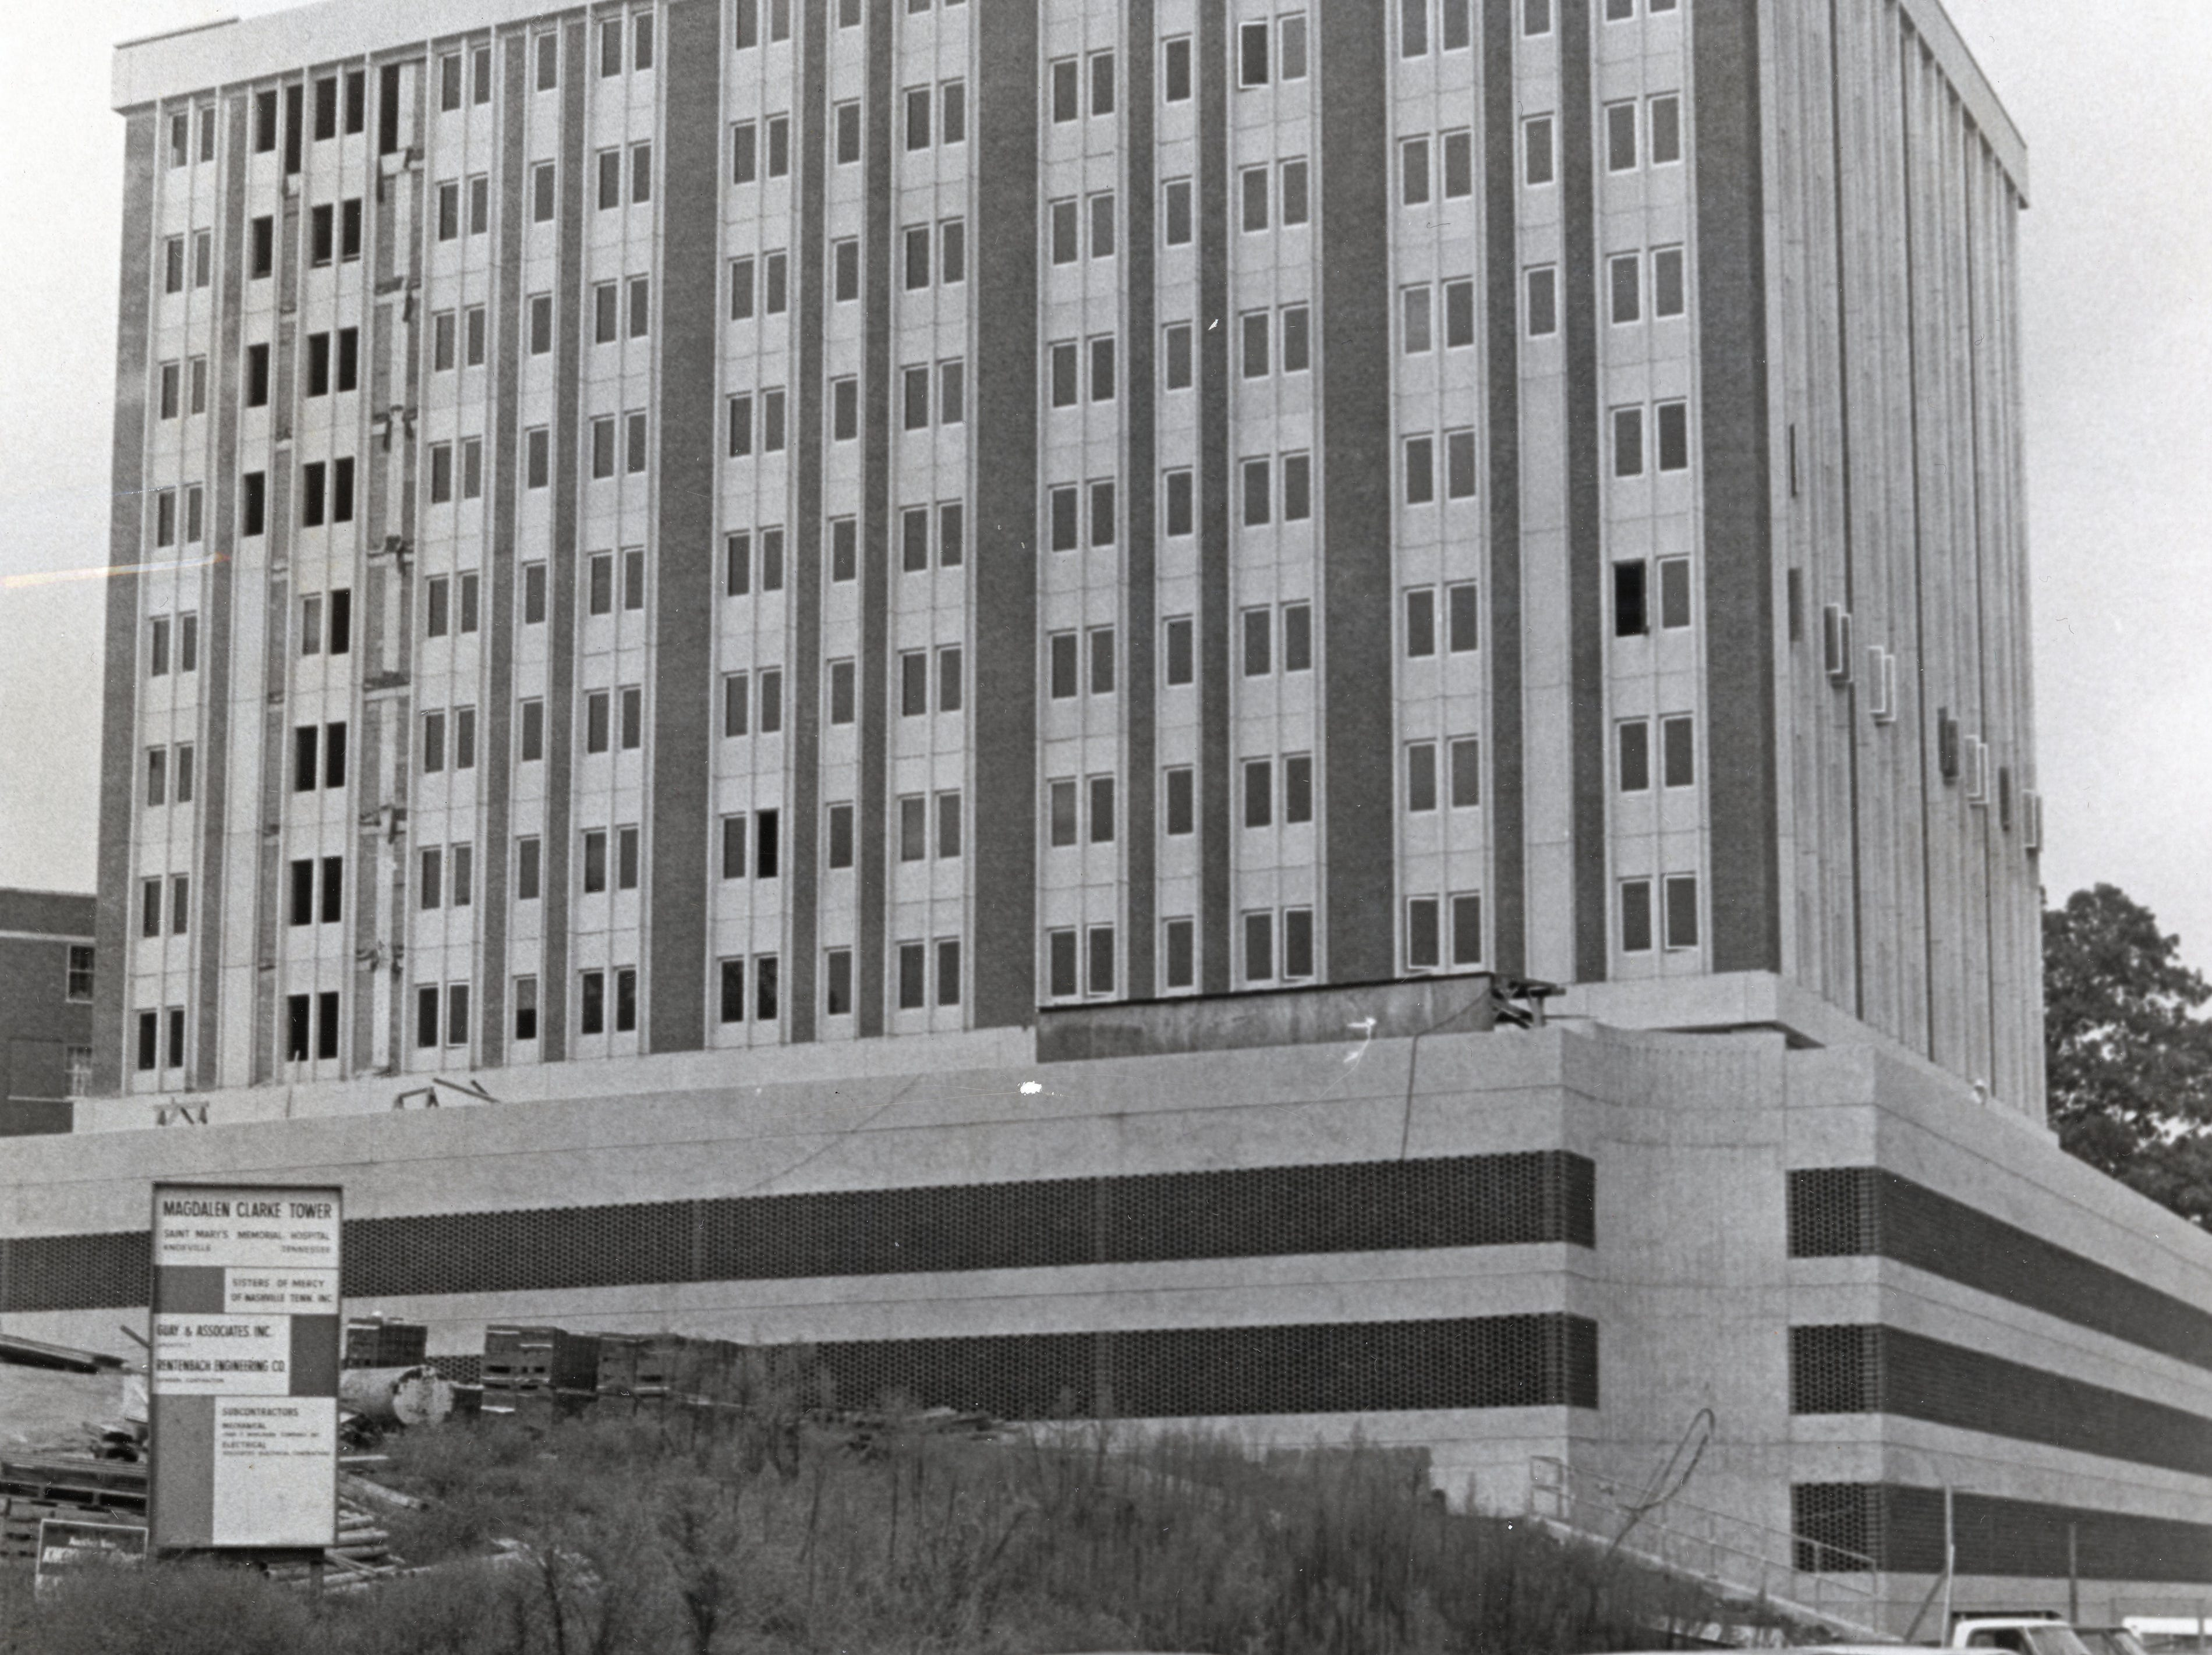 The Magdalene Tower, a new wing at St. Mary's Medical Center pictured in September 1972.